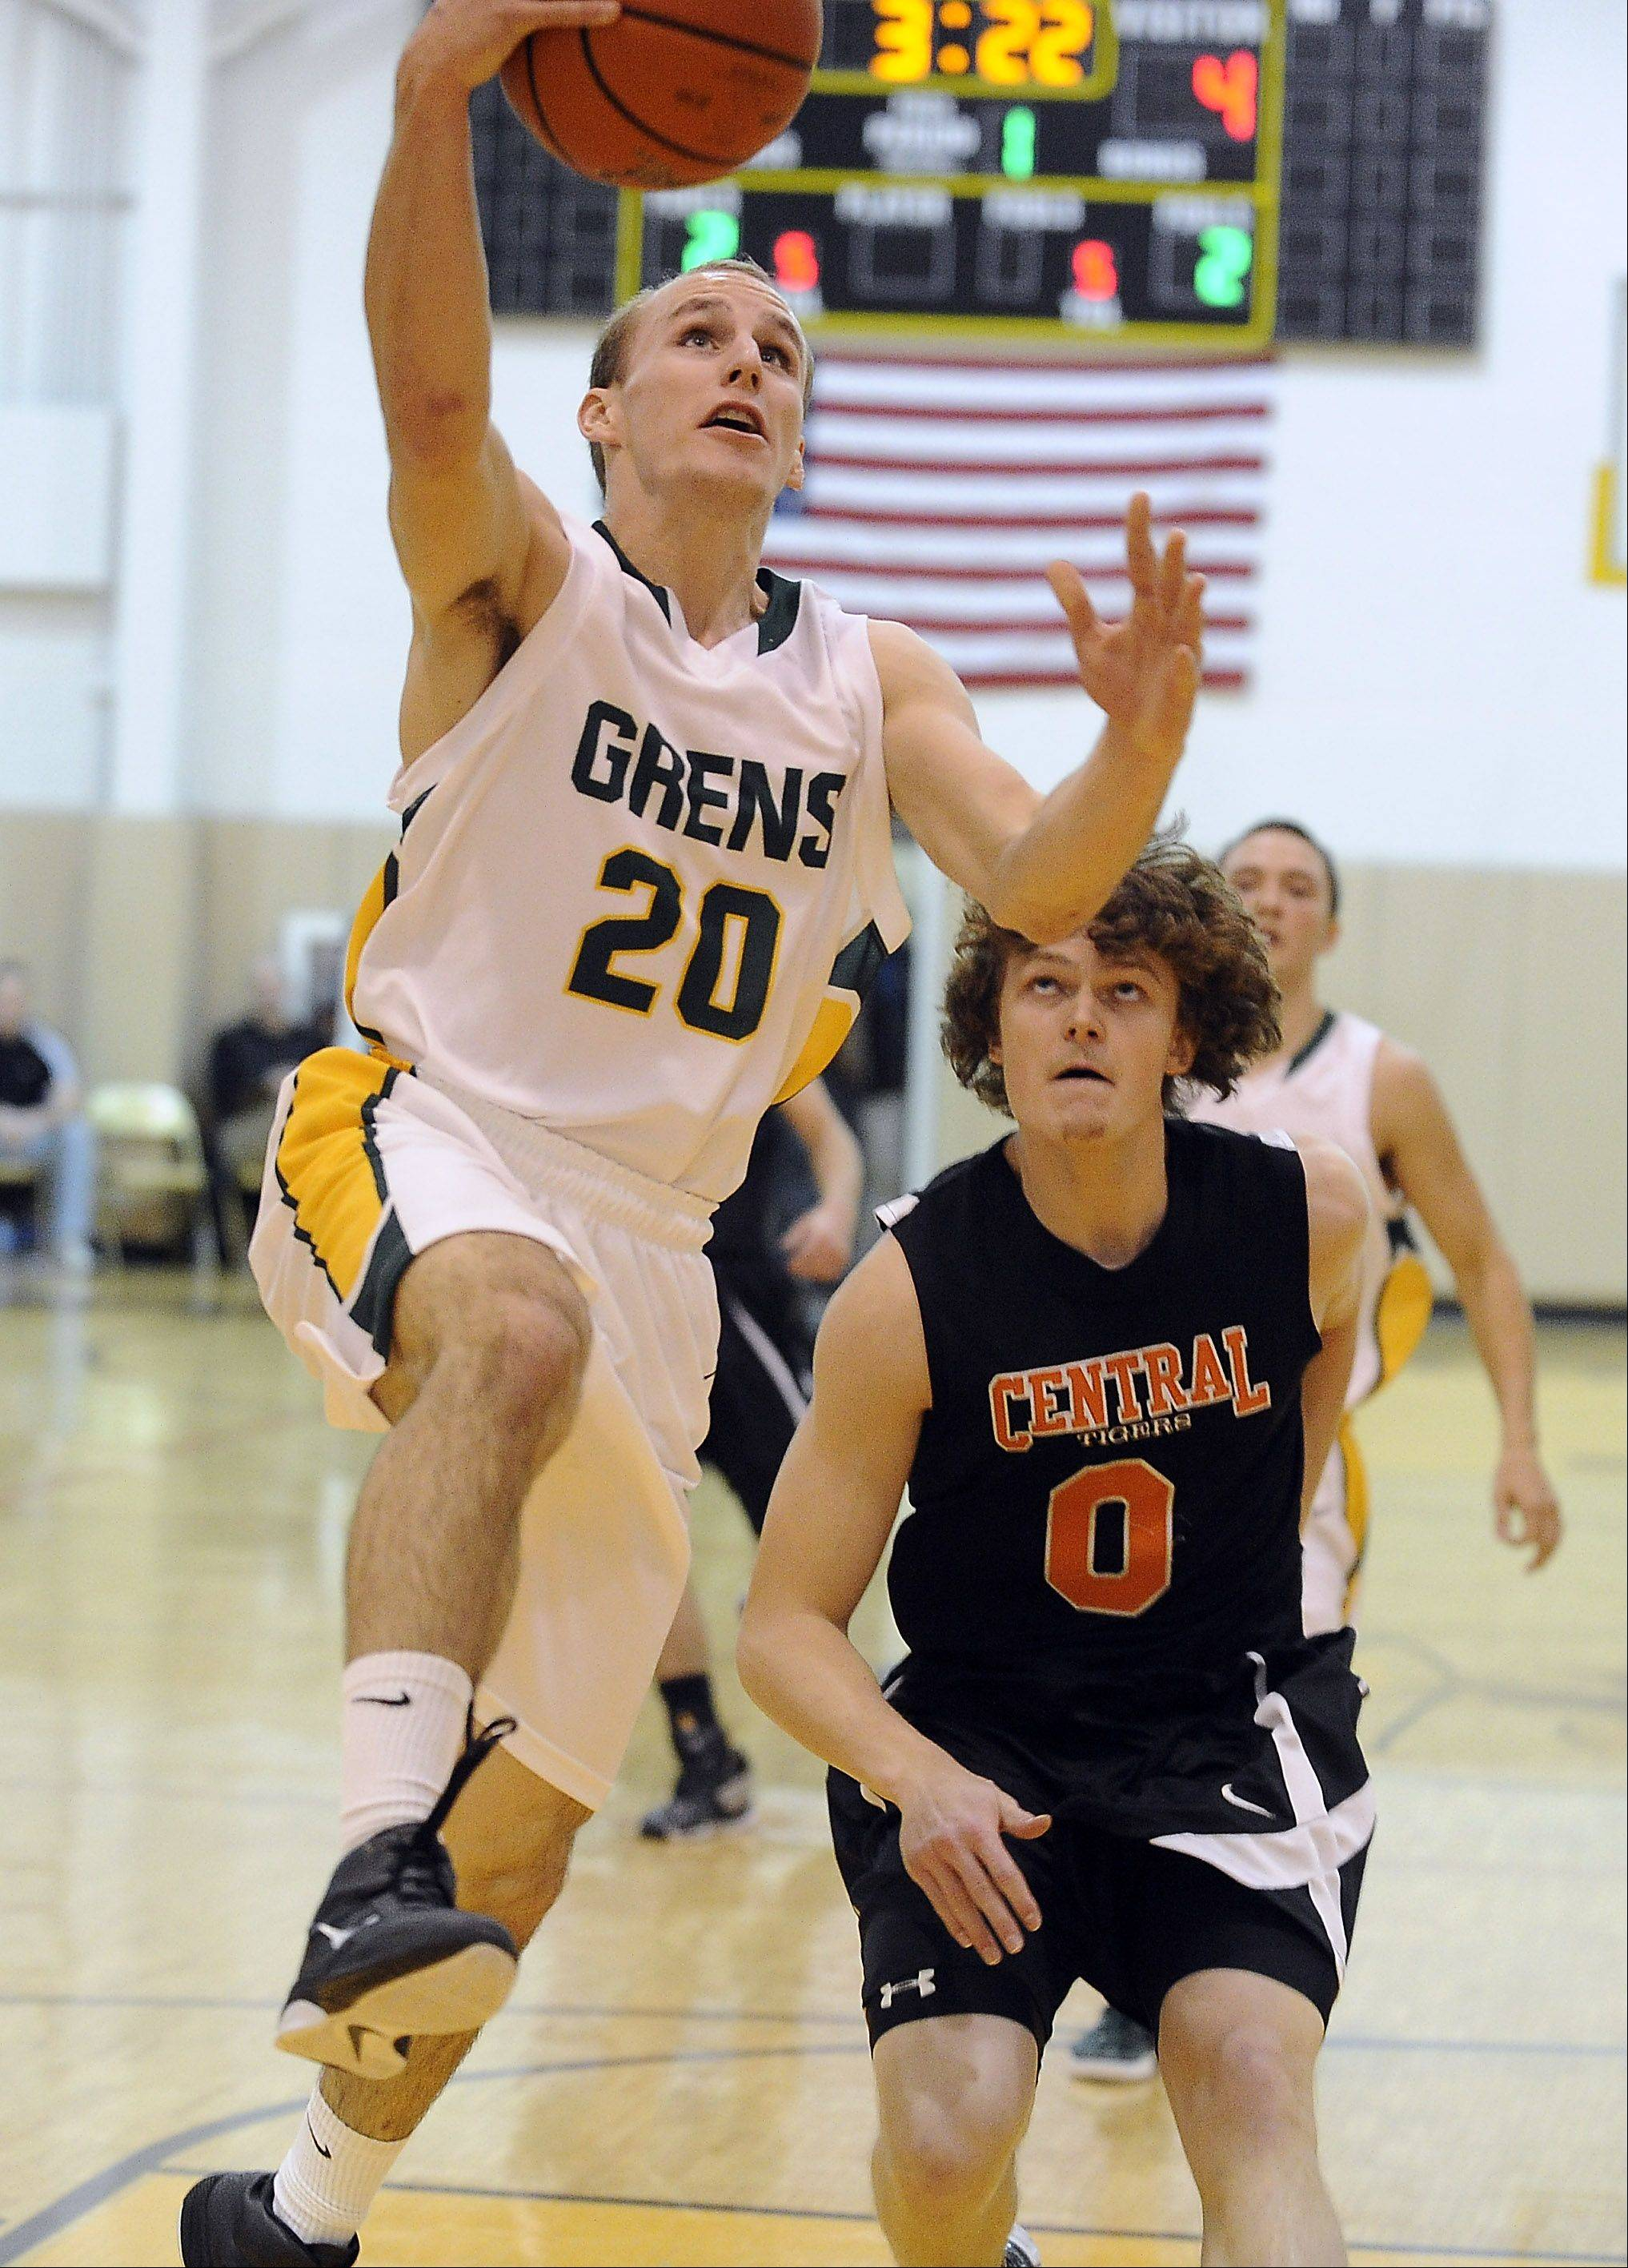 Crystal Lake Central's Nick Decoster is unable to stop Elk Grove's Jeff Miceli in the first quarter as he drives to the basket in Jacobs tournament semifinal play Thursday.